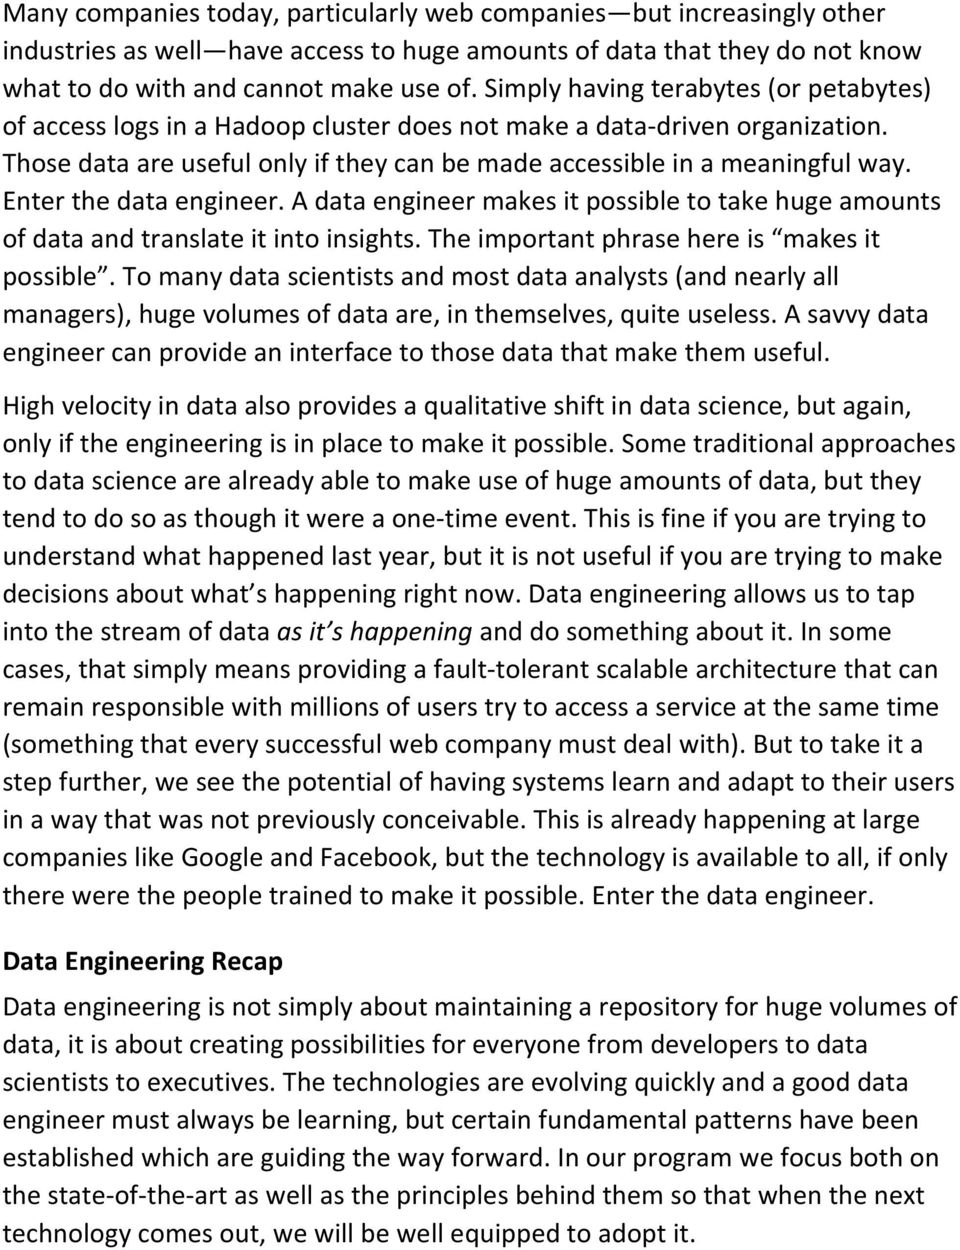 Enter the data engineer. A data engineer makes it possible to take huge amounts of data and translate it into insights. The important phrase here is makes it possible.